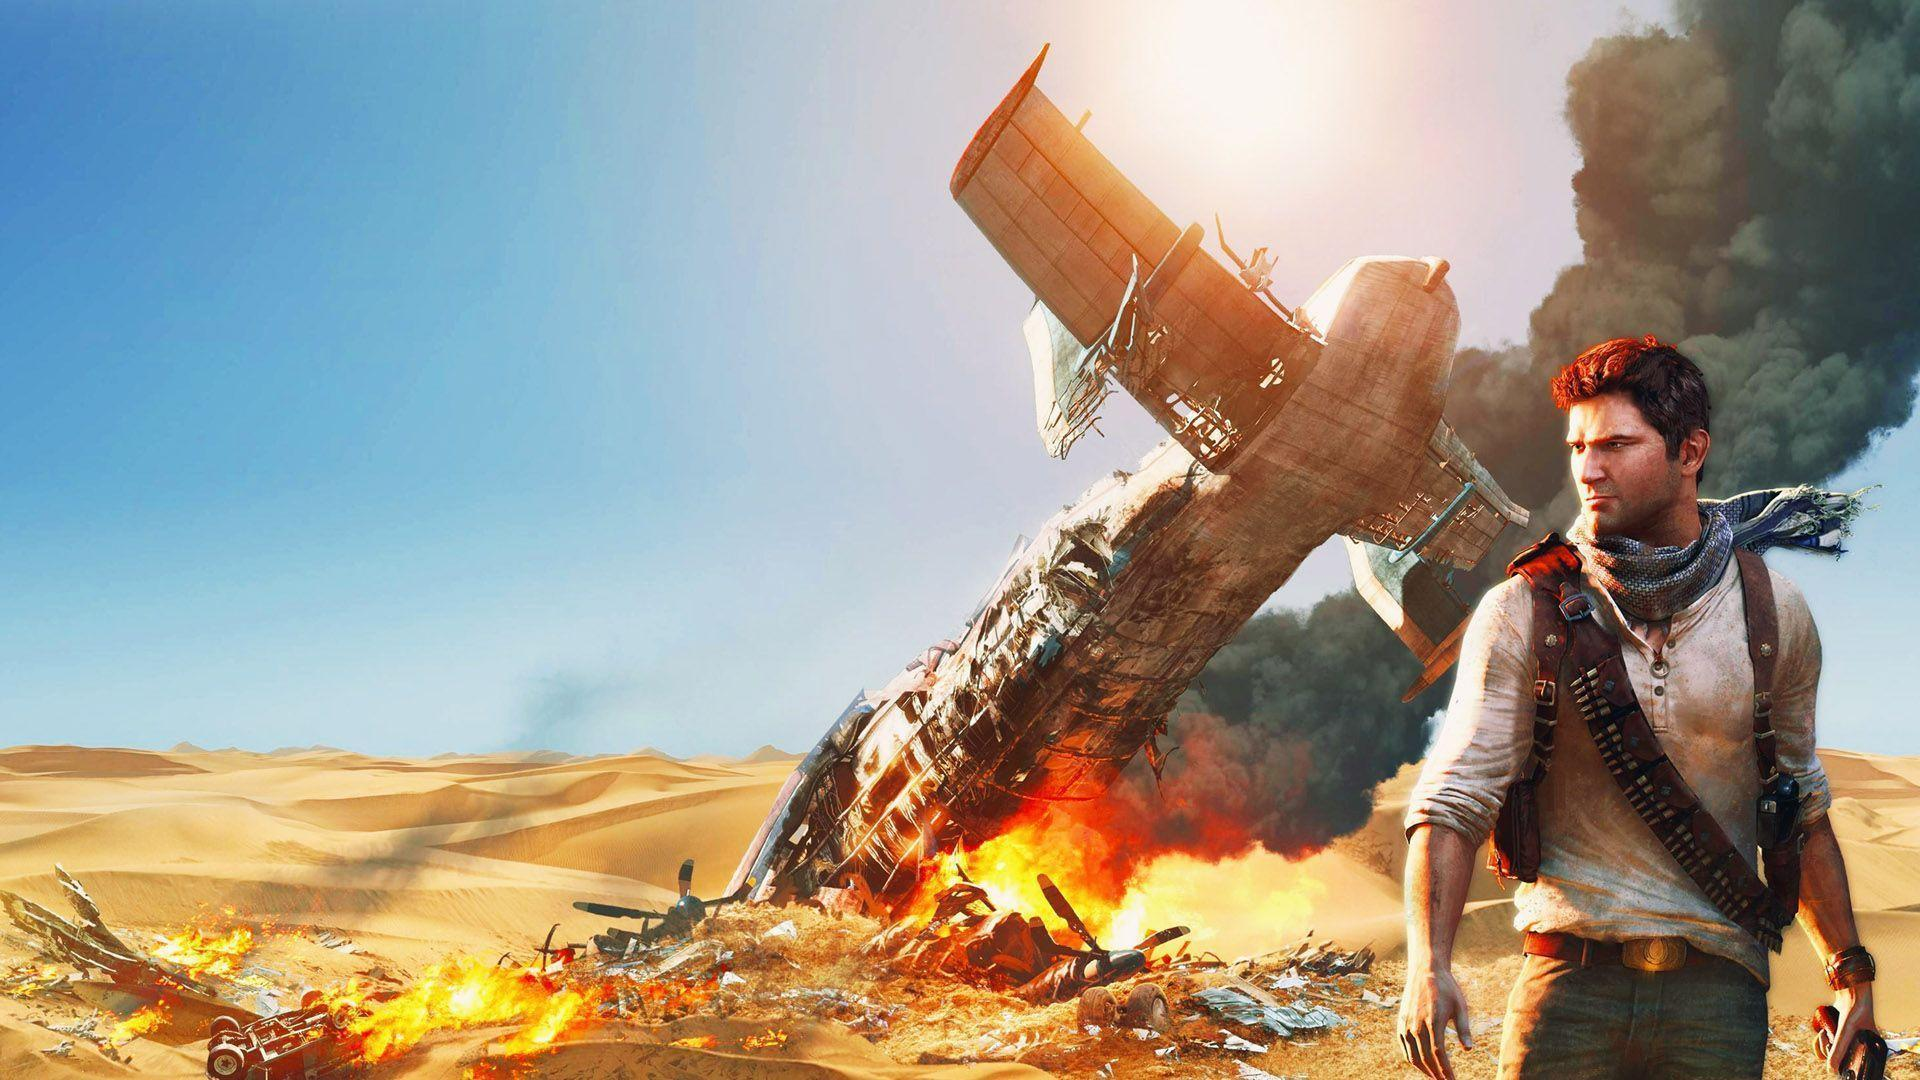 Uncharted Wallpaper Picture design Ideas